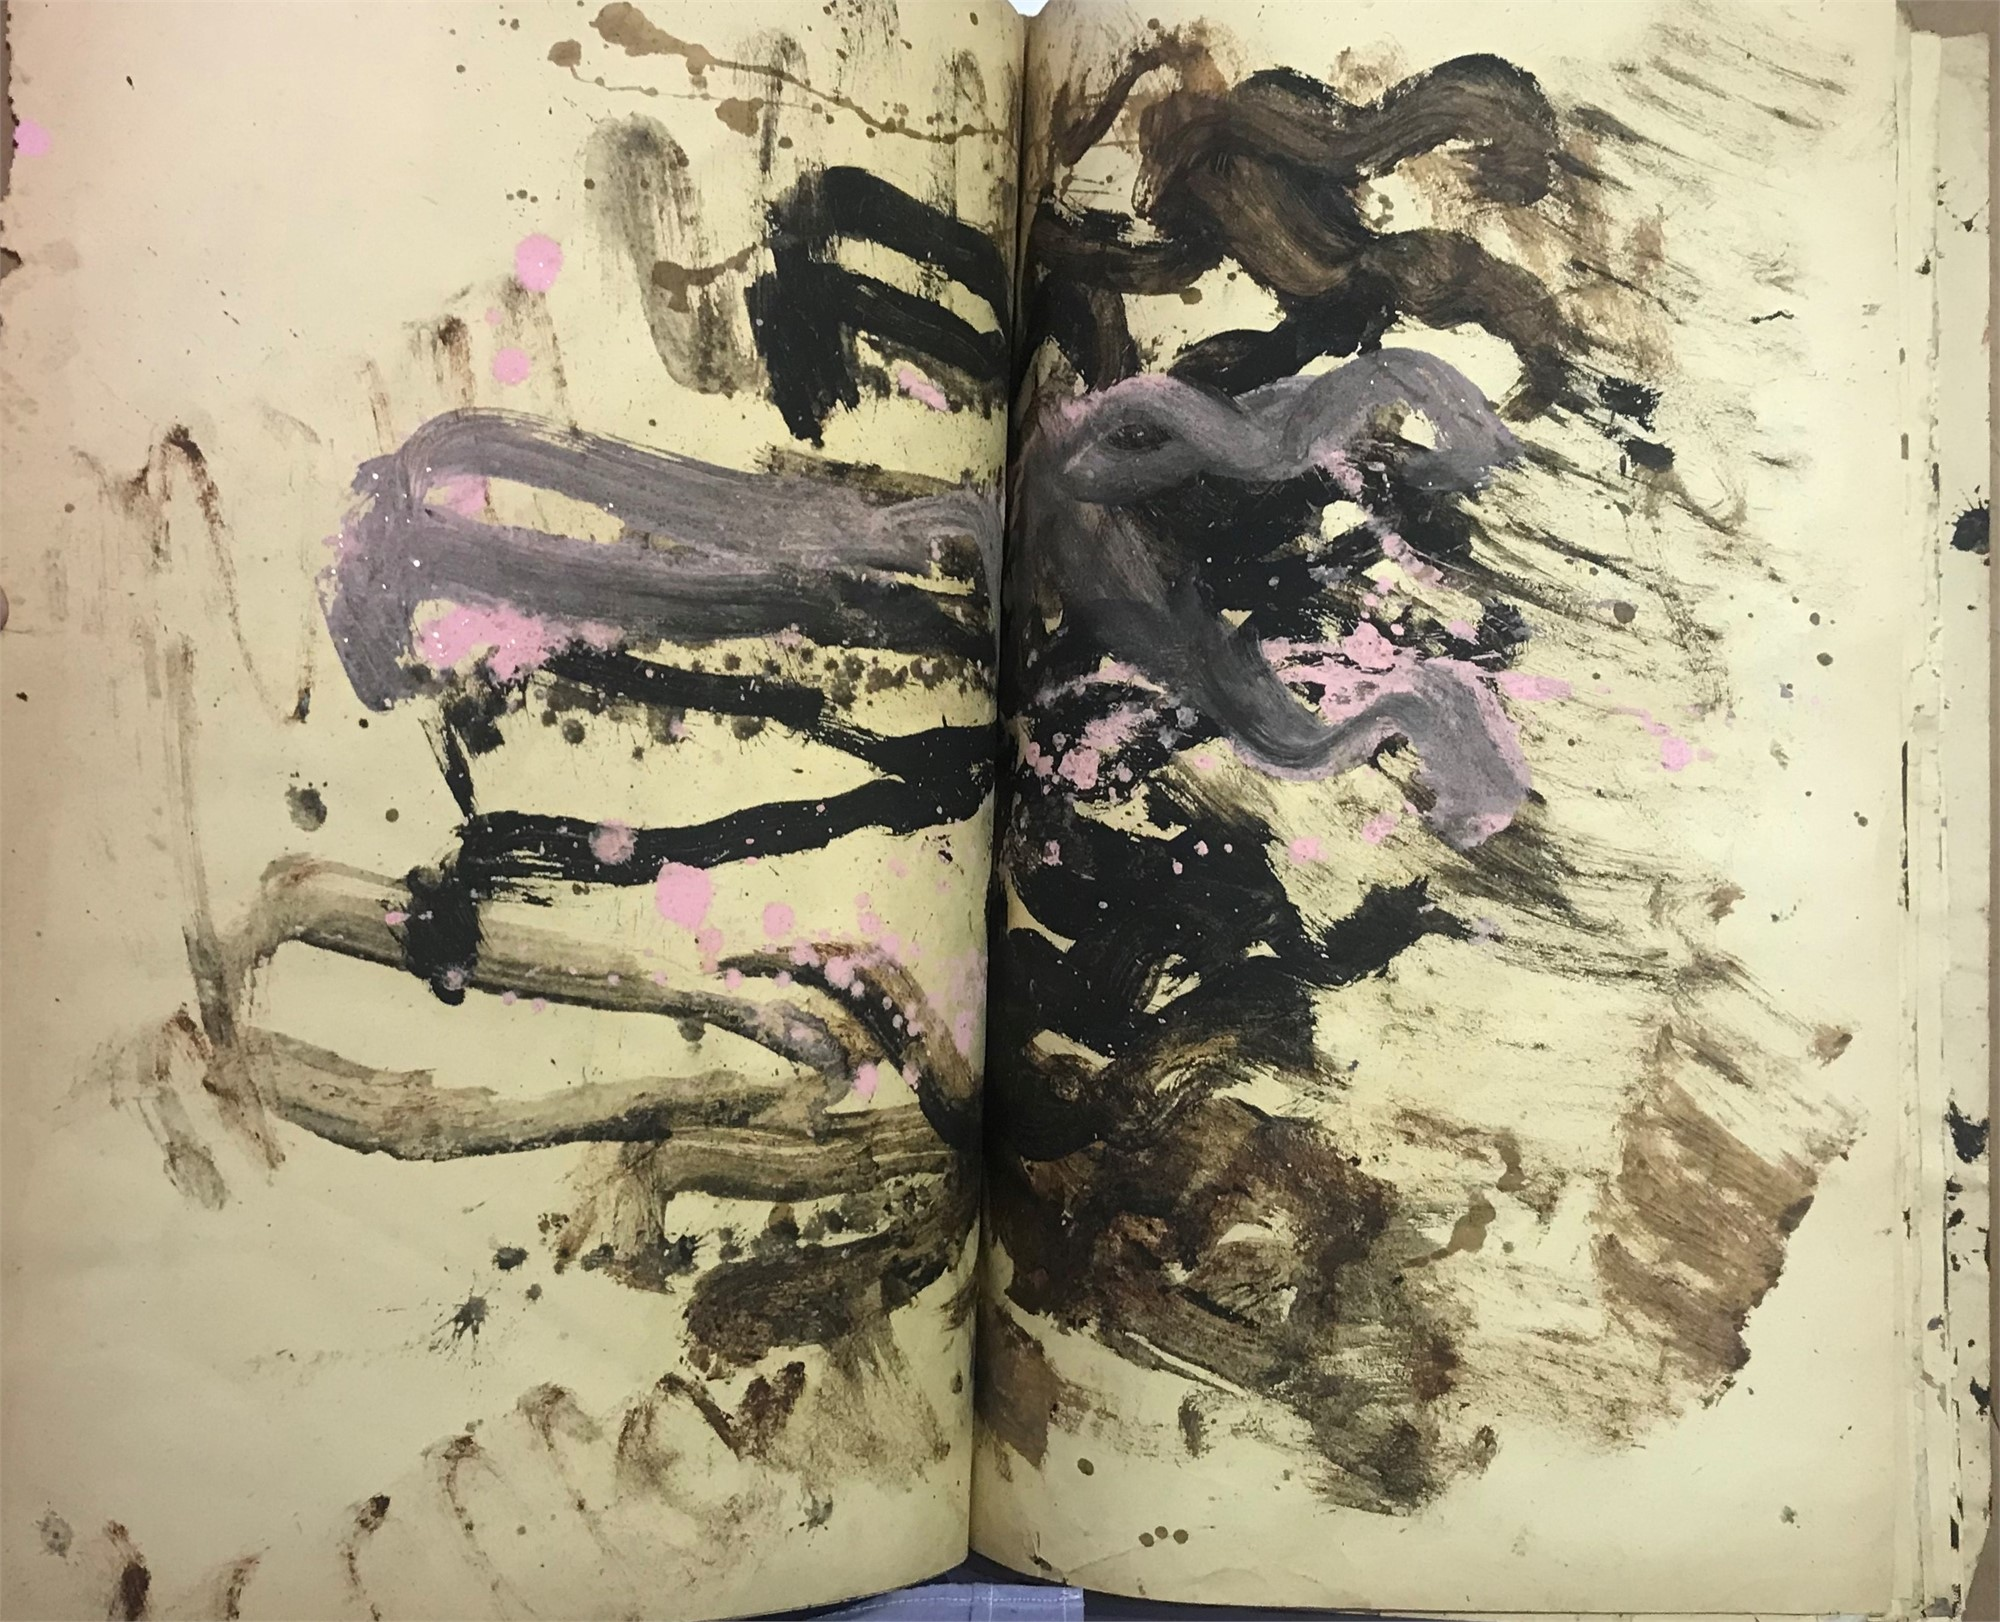 Cardboard Book of Art by Purvis Young